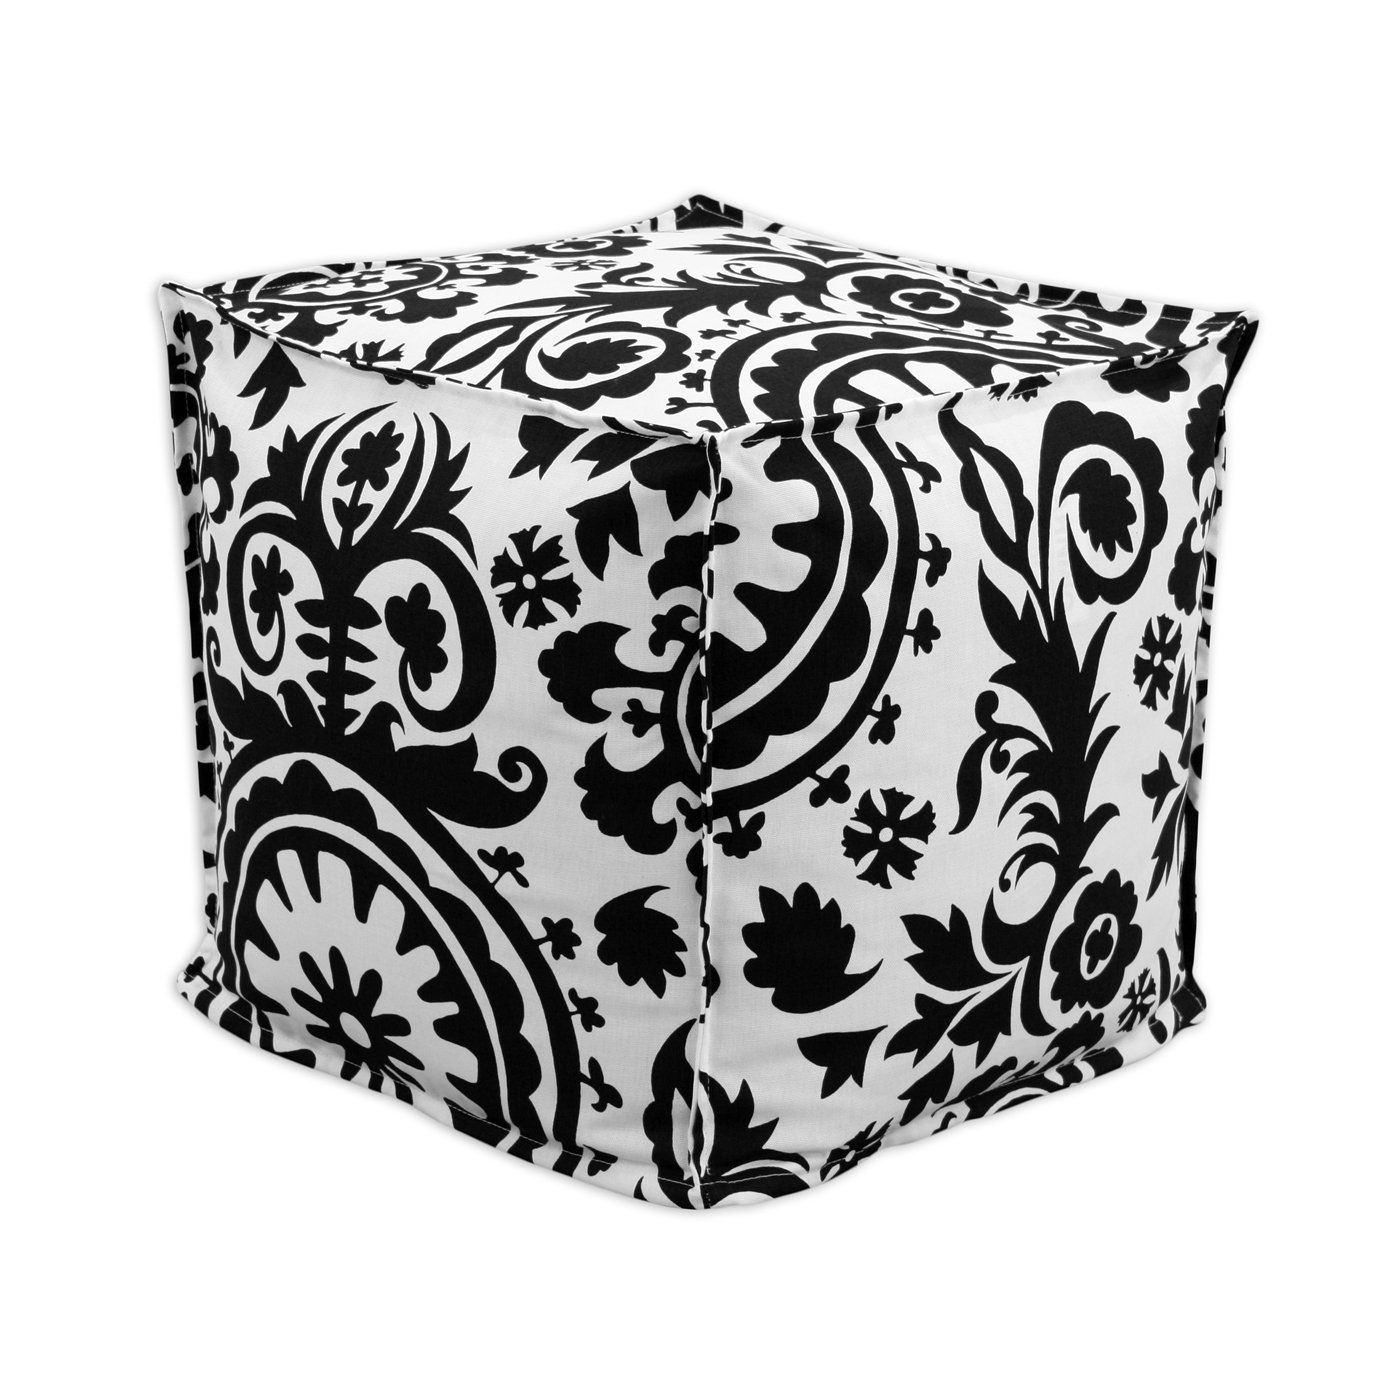 Chooty & Co. black and white pouf!!! LOVE THESE! Ottoman